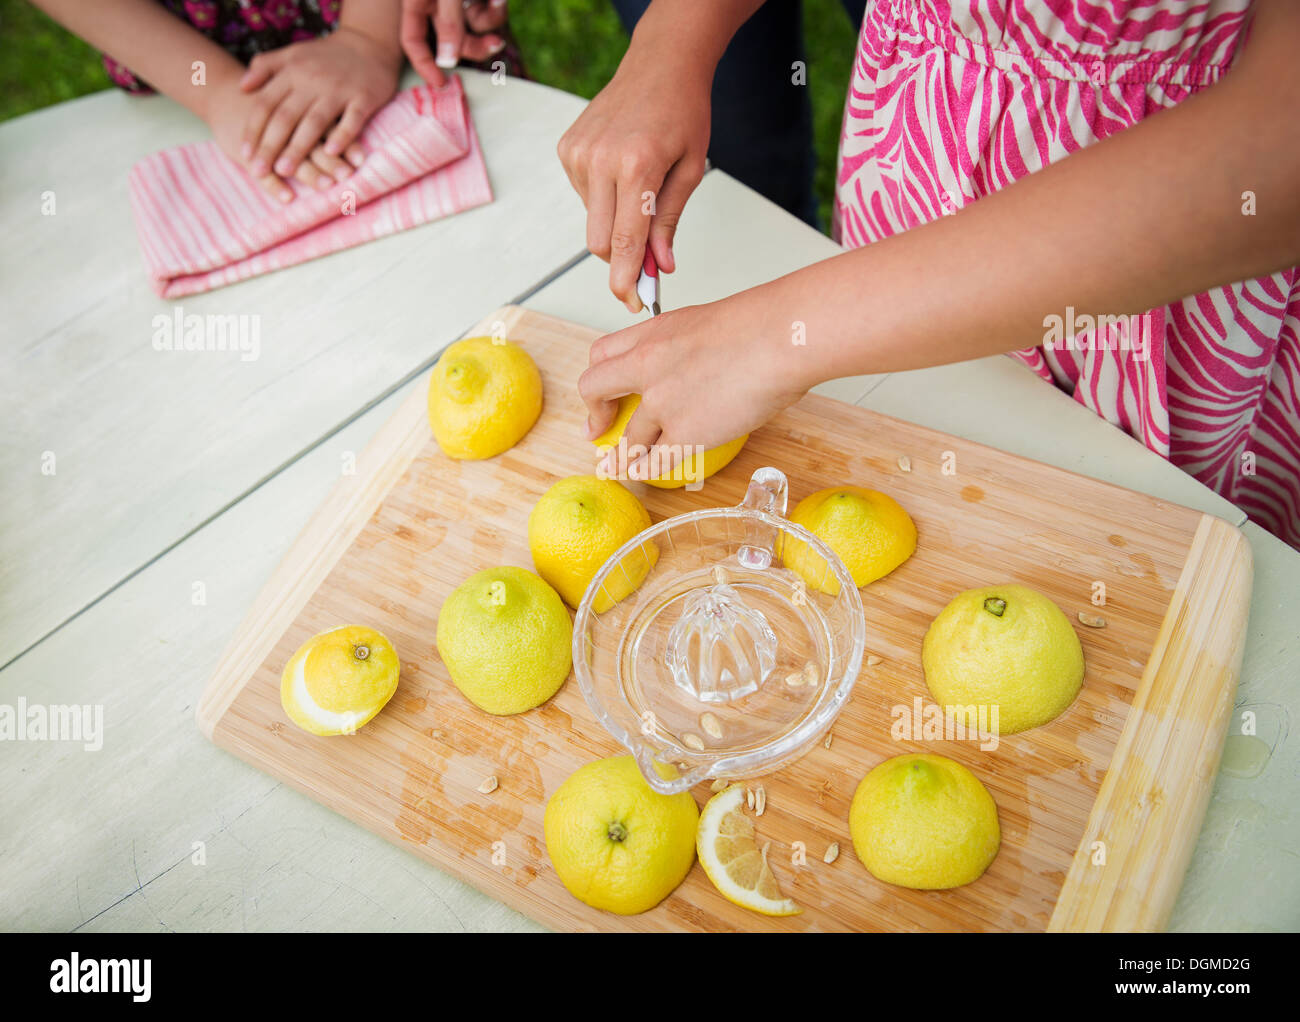 A summer family gathering at a farm. A tabletop chopping board. A child cutting up lemons and juicing them for lemonade. - Stock Image